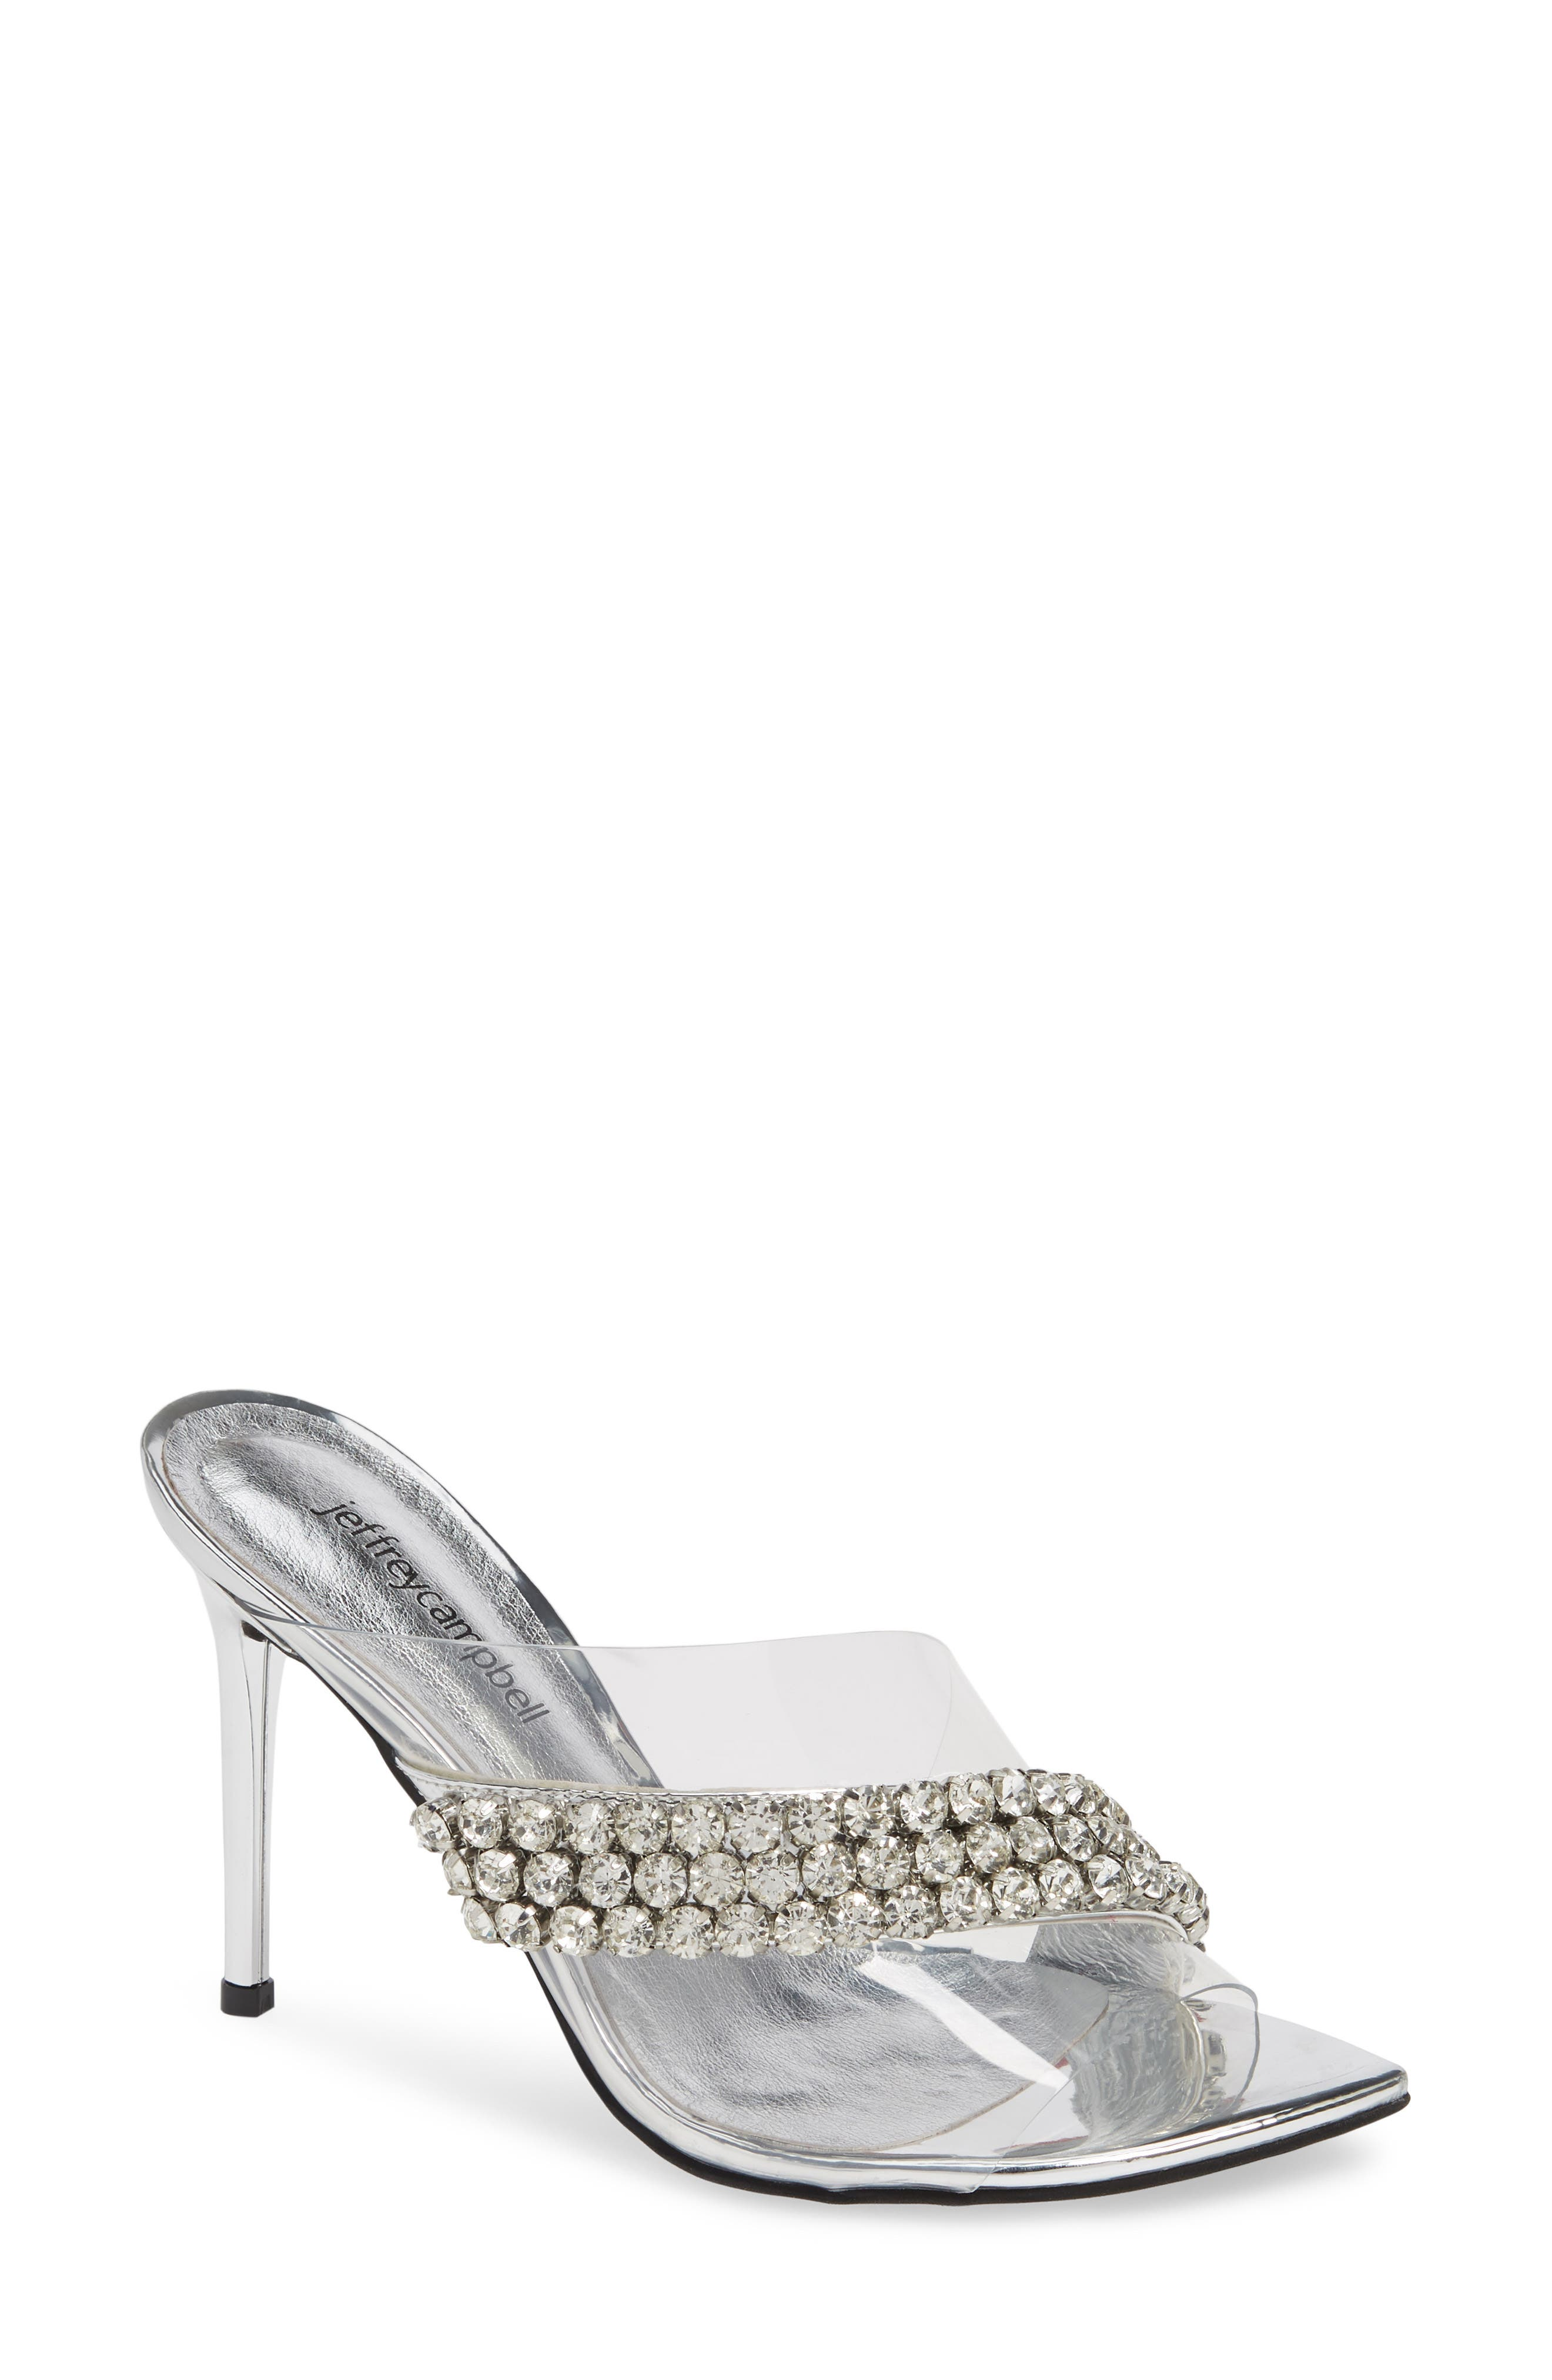 Glam Sandal,                             Main thumbnail 1, color,                             SILVER MIRROR LEATHER